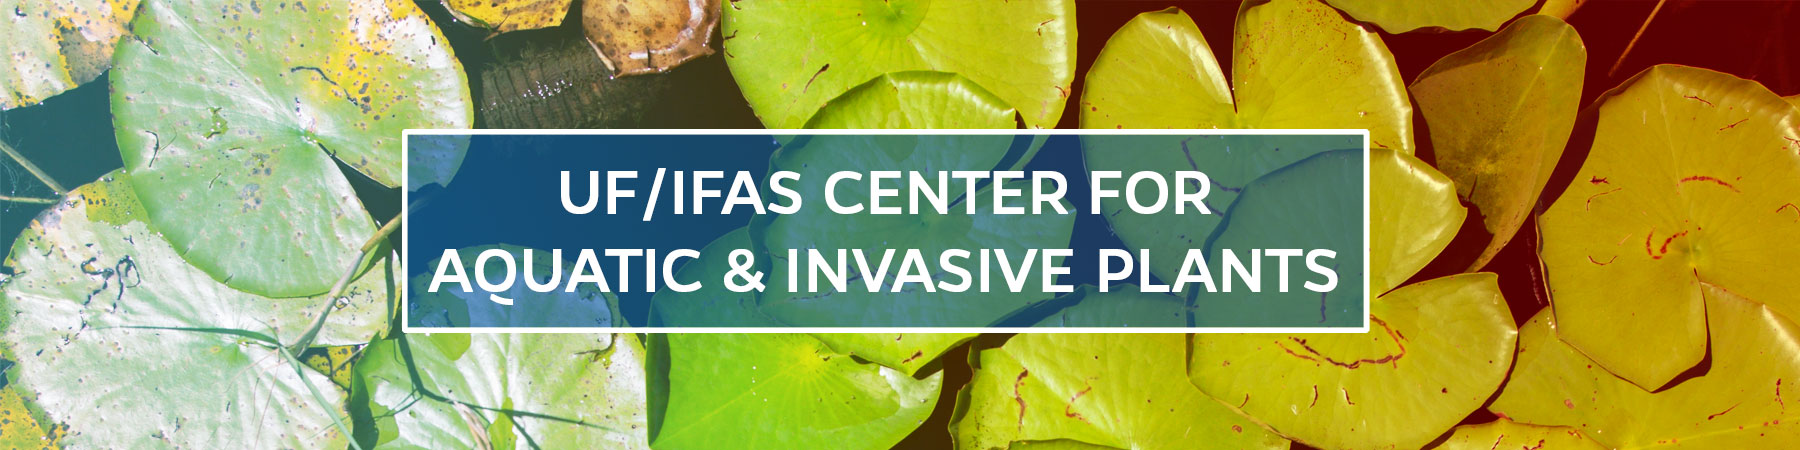 UF/IFAS Center for Aquatic and Invasive Plants